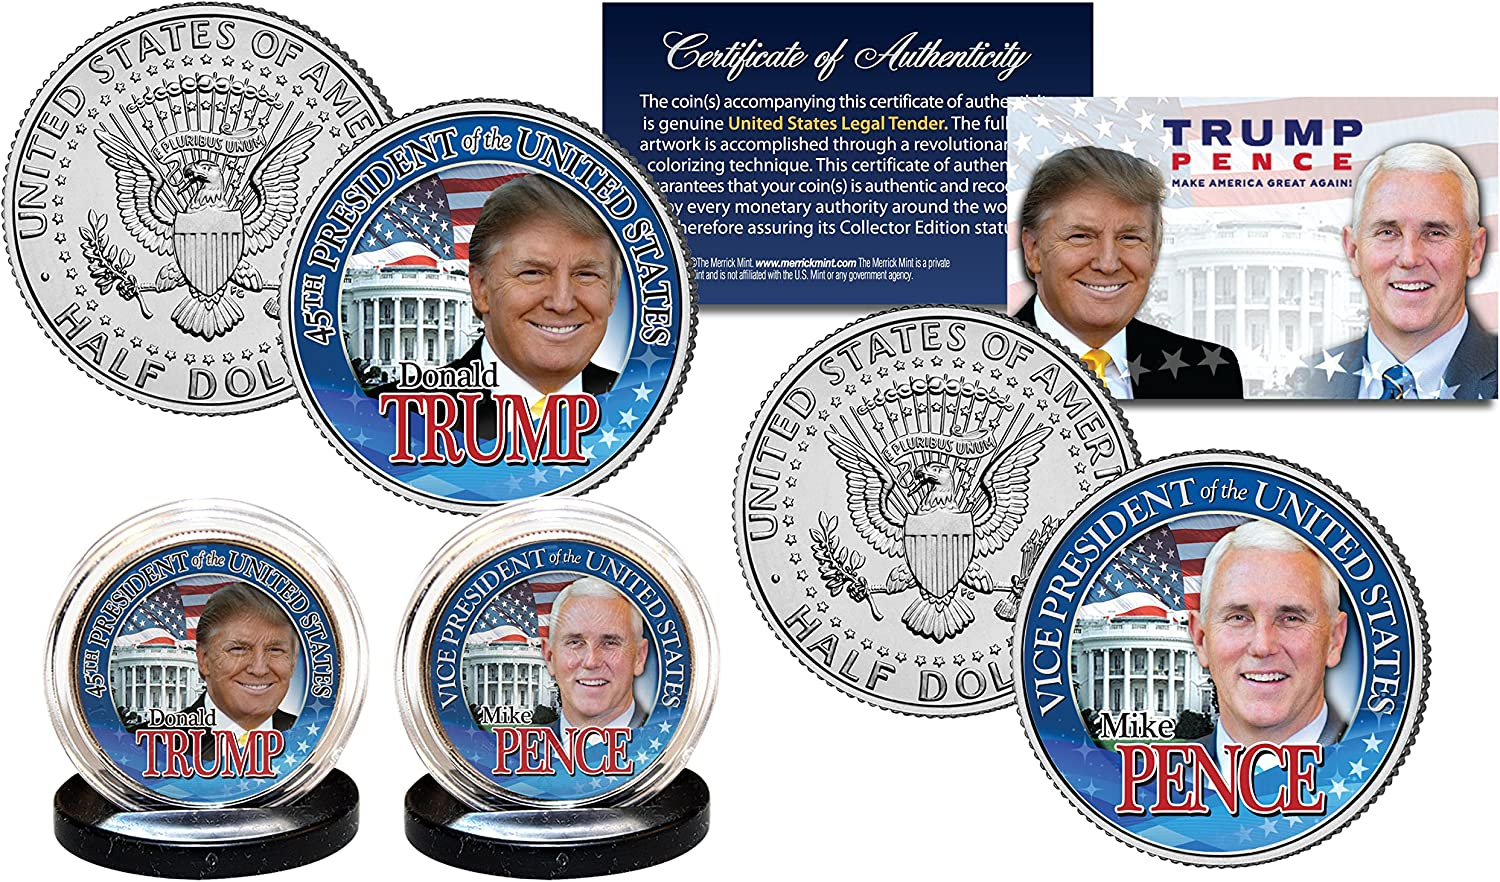 DONALD TRUMP Pres & MIKE PENCE VP 45th President OFFICIAL 2016 U.S. 2-Coin Set